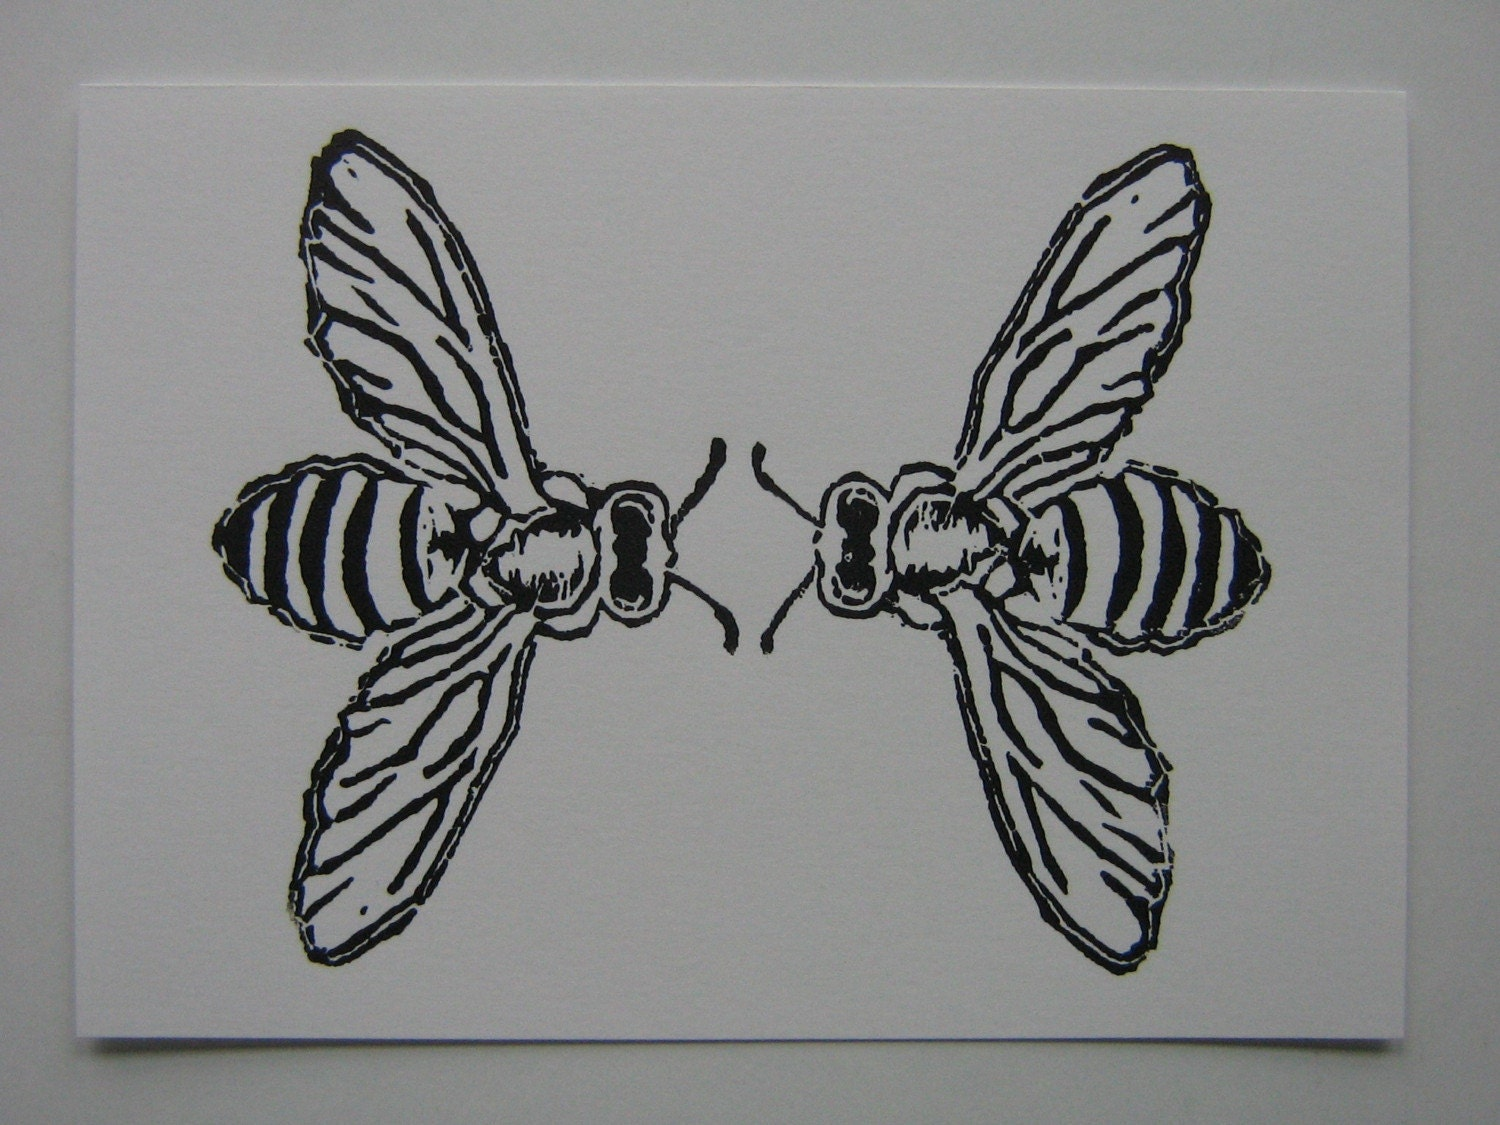 Linoleum Print Designs Honey bees linoleum bl...